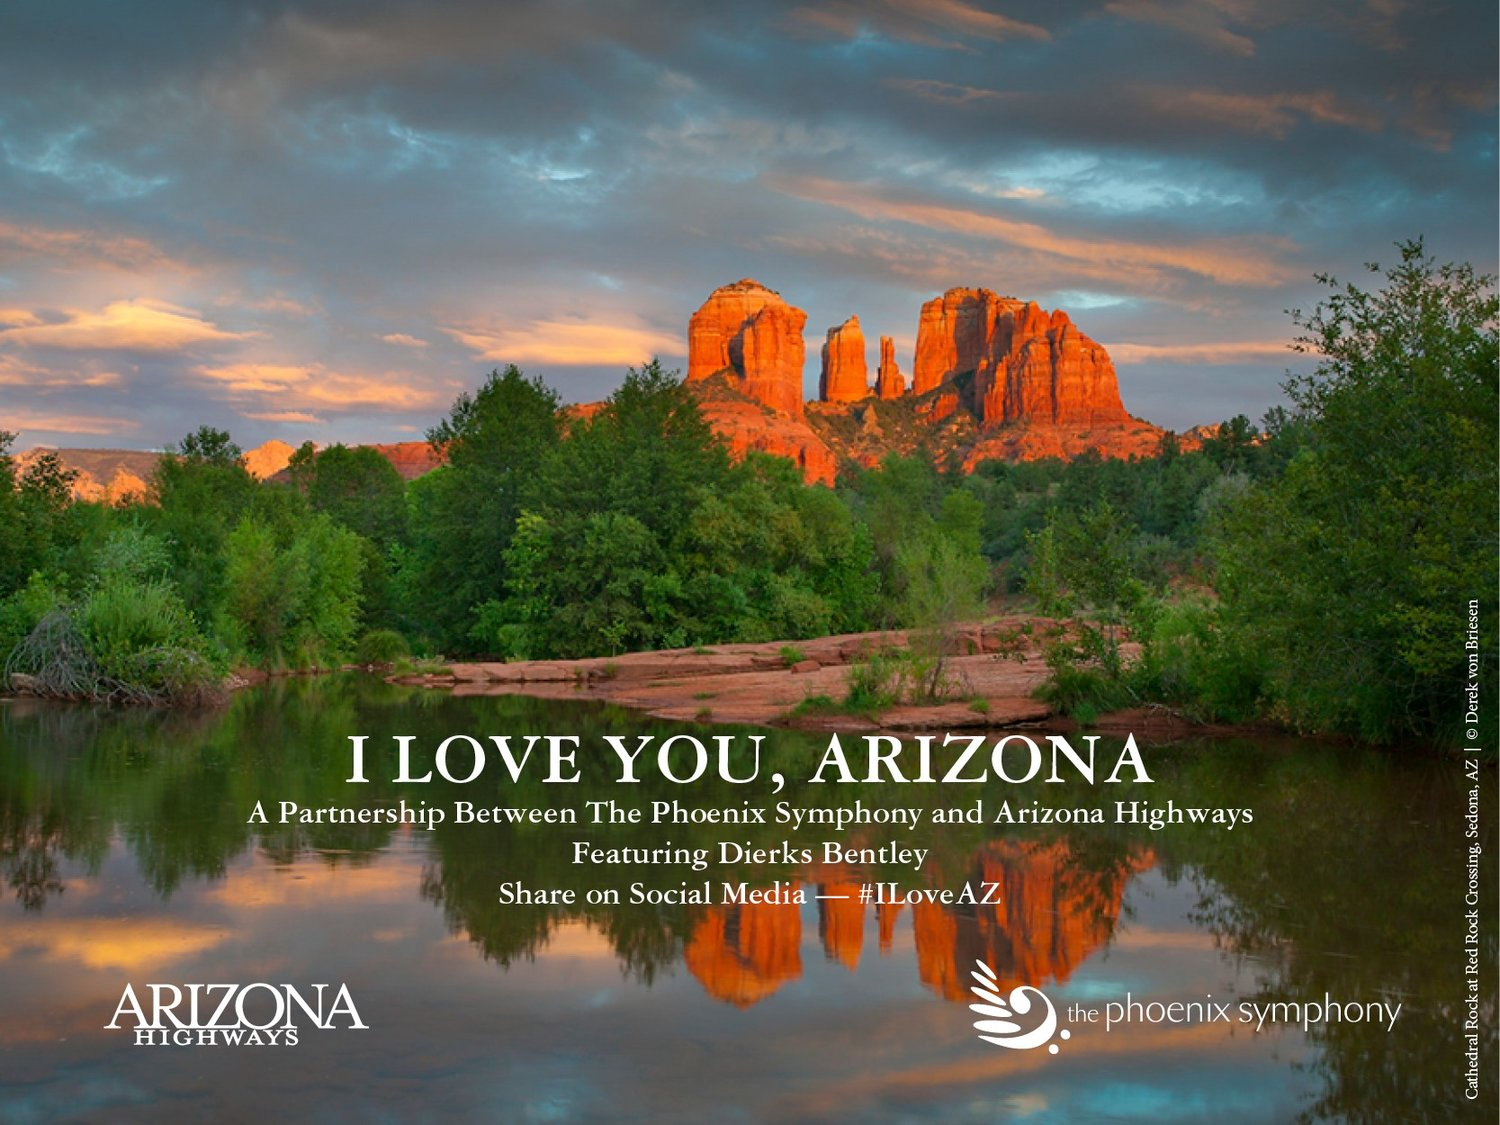 The Phoenix Symphony invites people from all over to submit and share what they appreciate and treasure most about Arizona. Post photos and videos via social media using the hashtag #iloveaz and tag The Phoenix Symphony (@thephoenixsymphony).